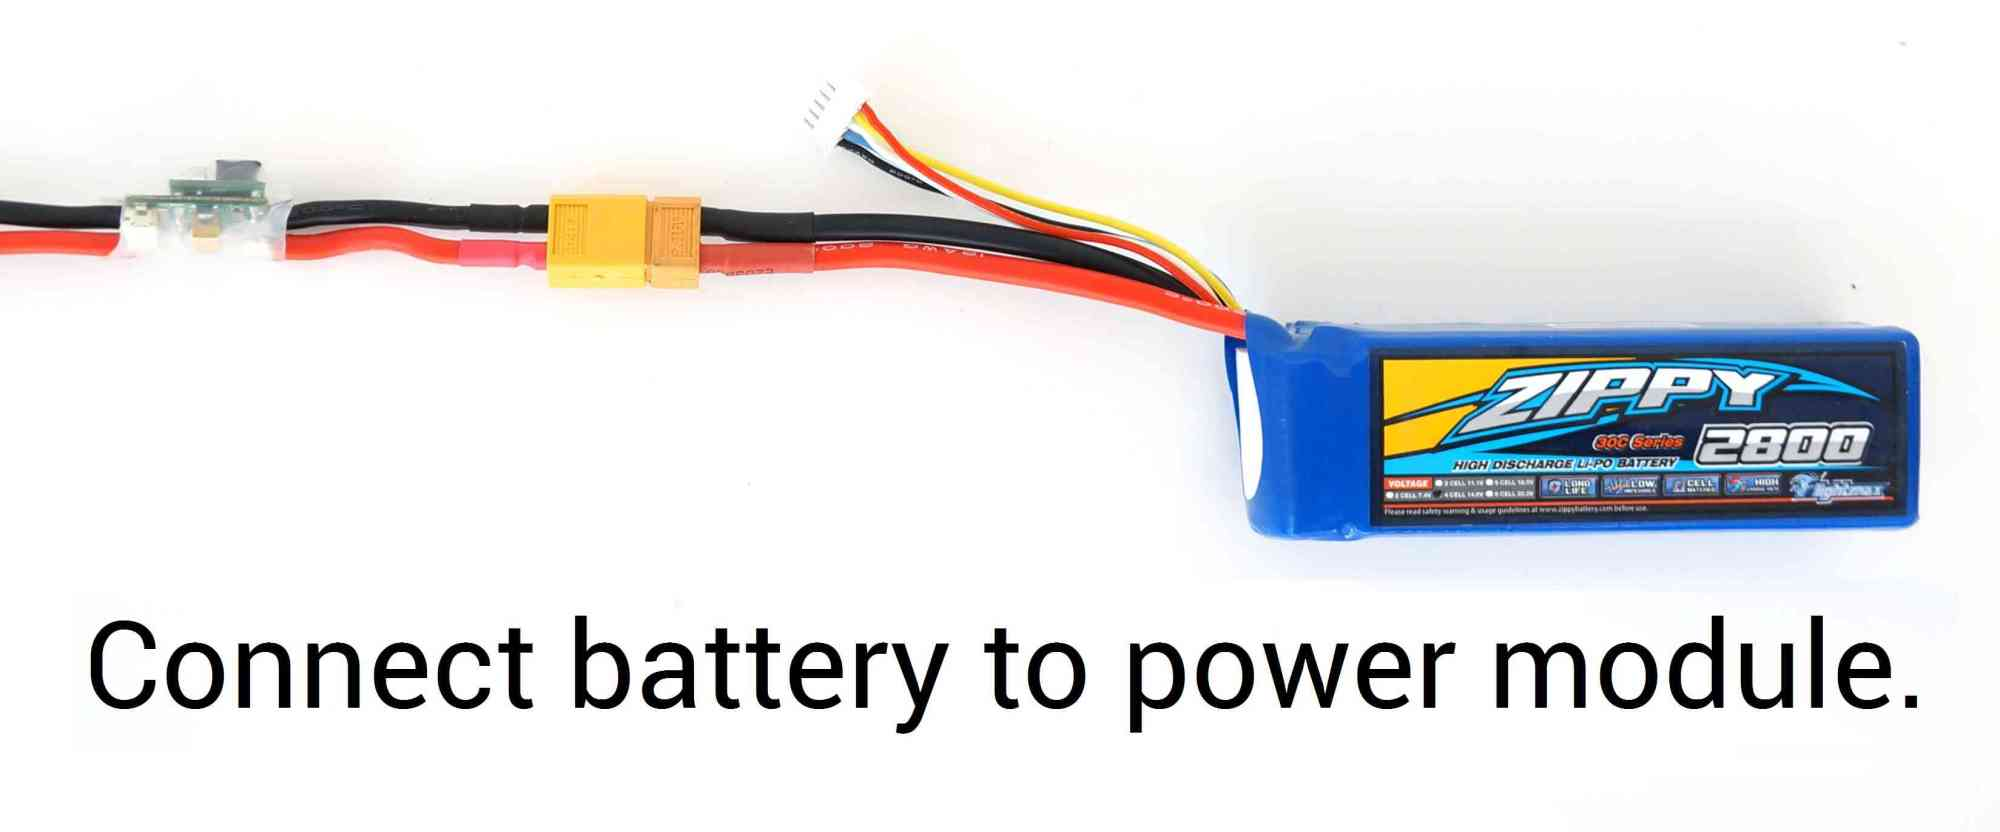 hight resolution of  images connect battery jpg